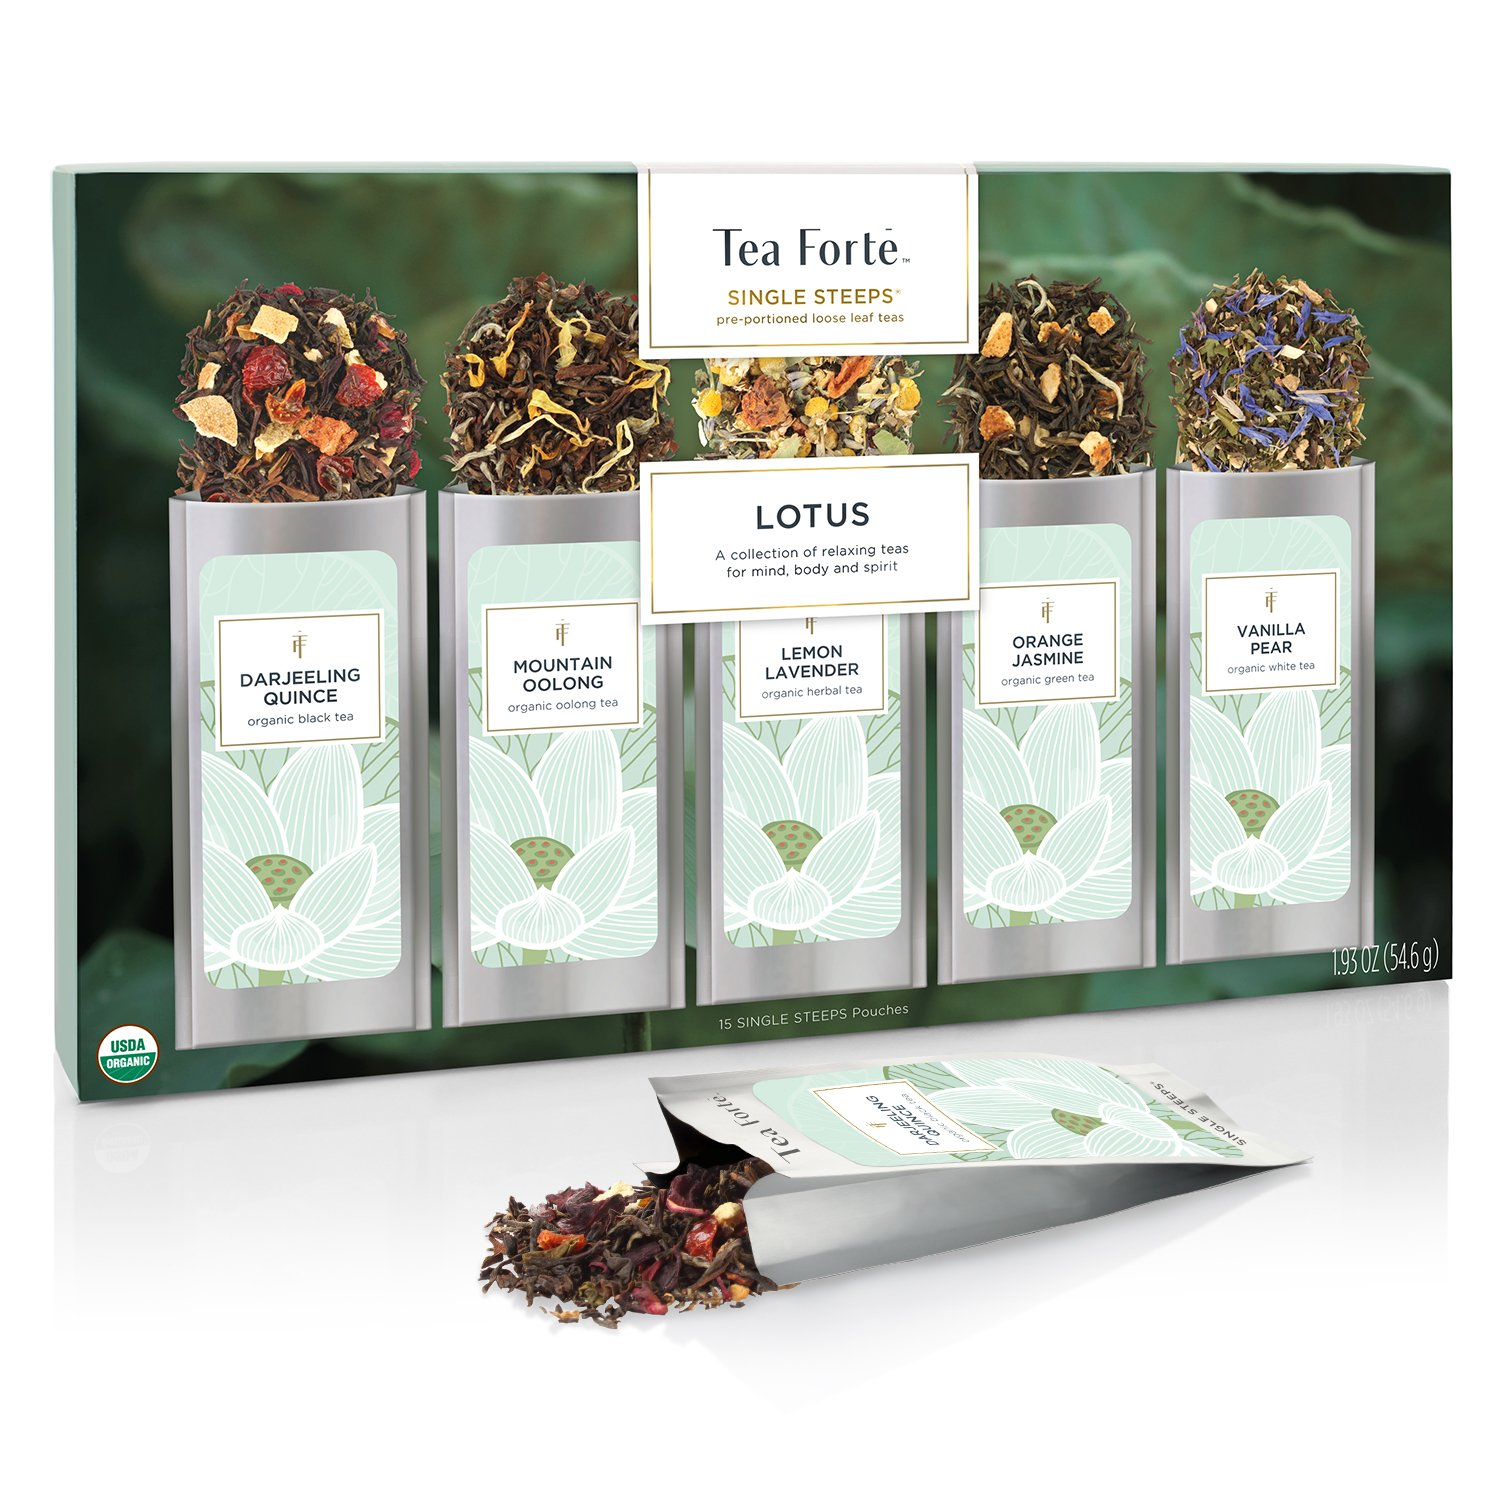 Tea Forté SINGLE STEEPS Lotus Loose Leaf Tea Sampler, Assorted Variety Tea Box, 15 Single Serve Pouches – Black Tea, Green Tea, Oolong Tea, White Tea, Herbal Tea